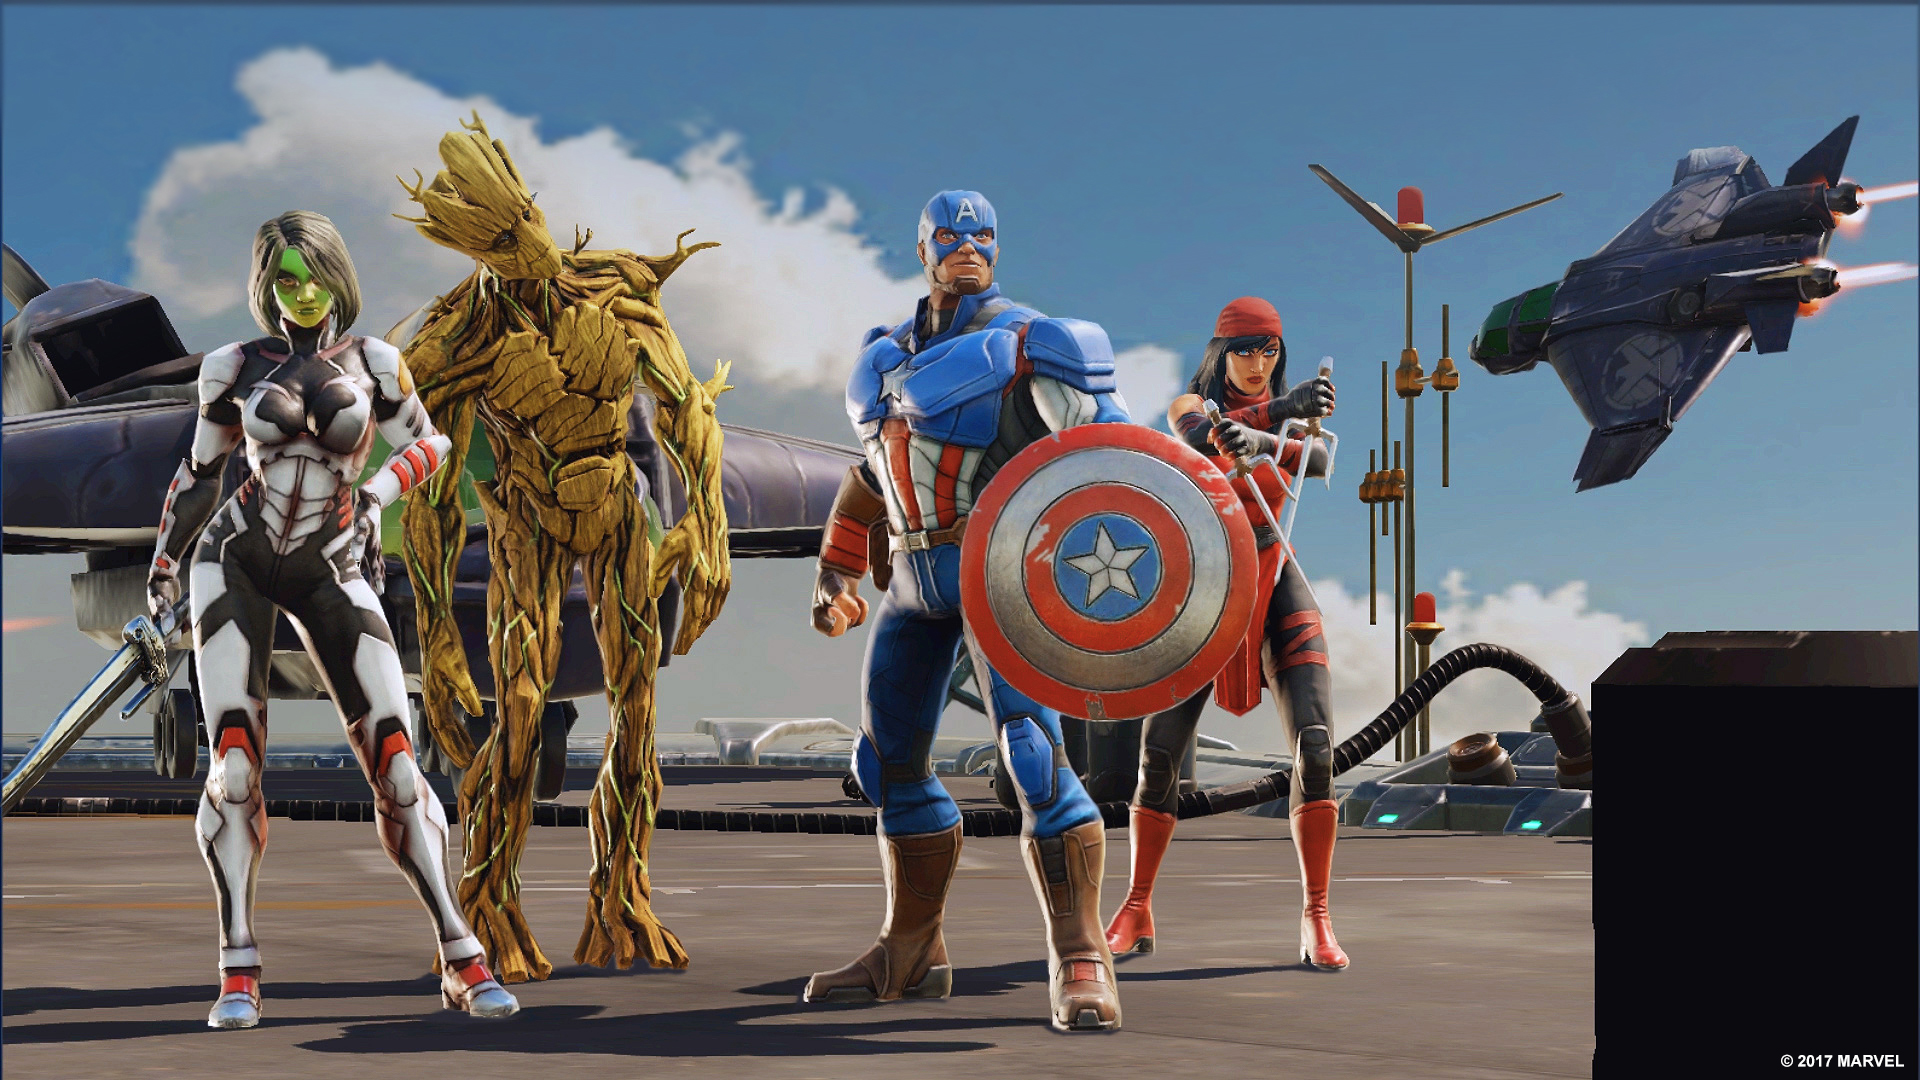 Marvel Announce, STRIKE FORCE, A New Game Coming to Mobile